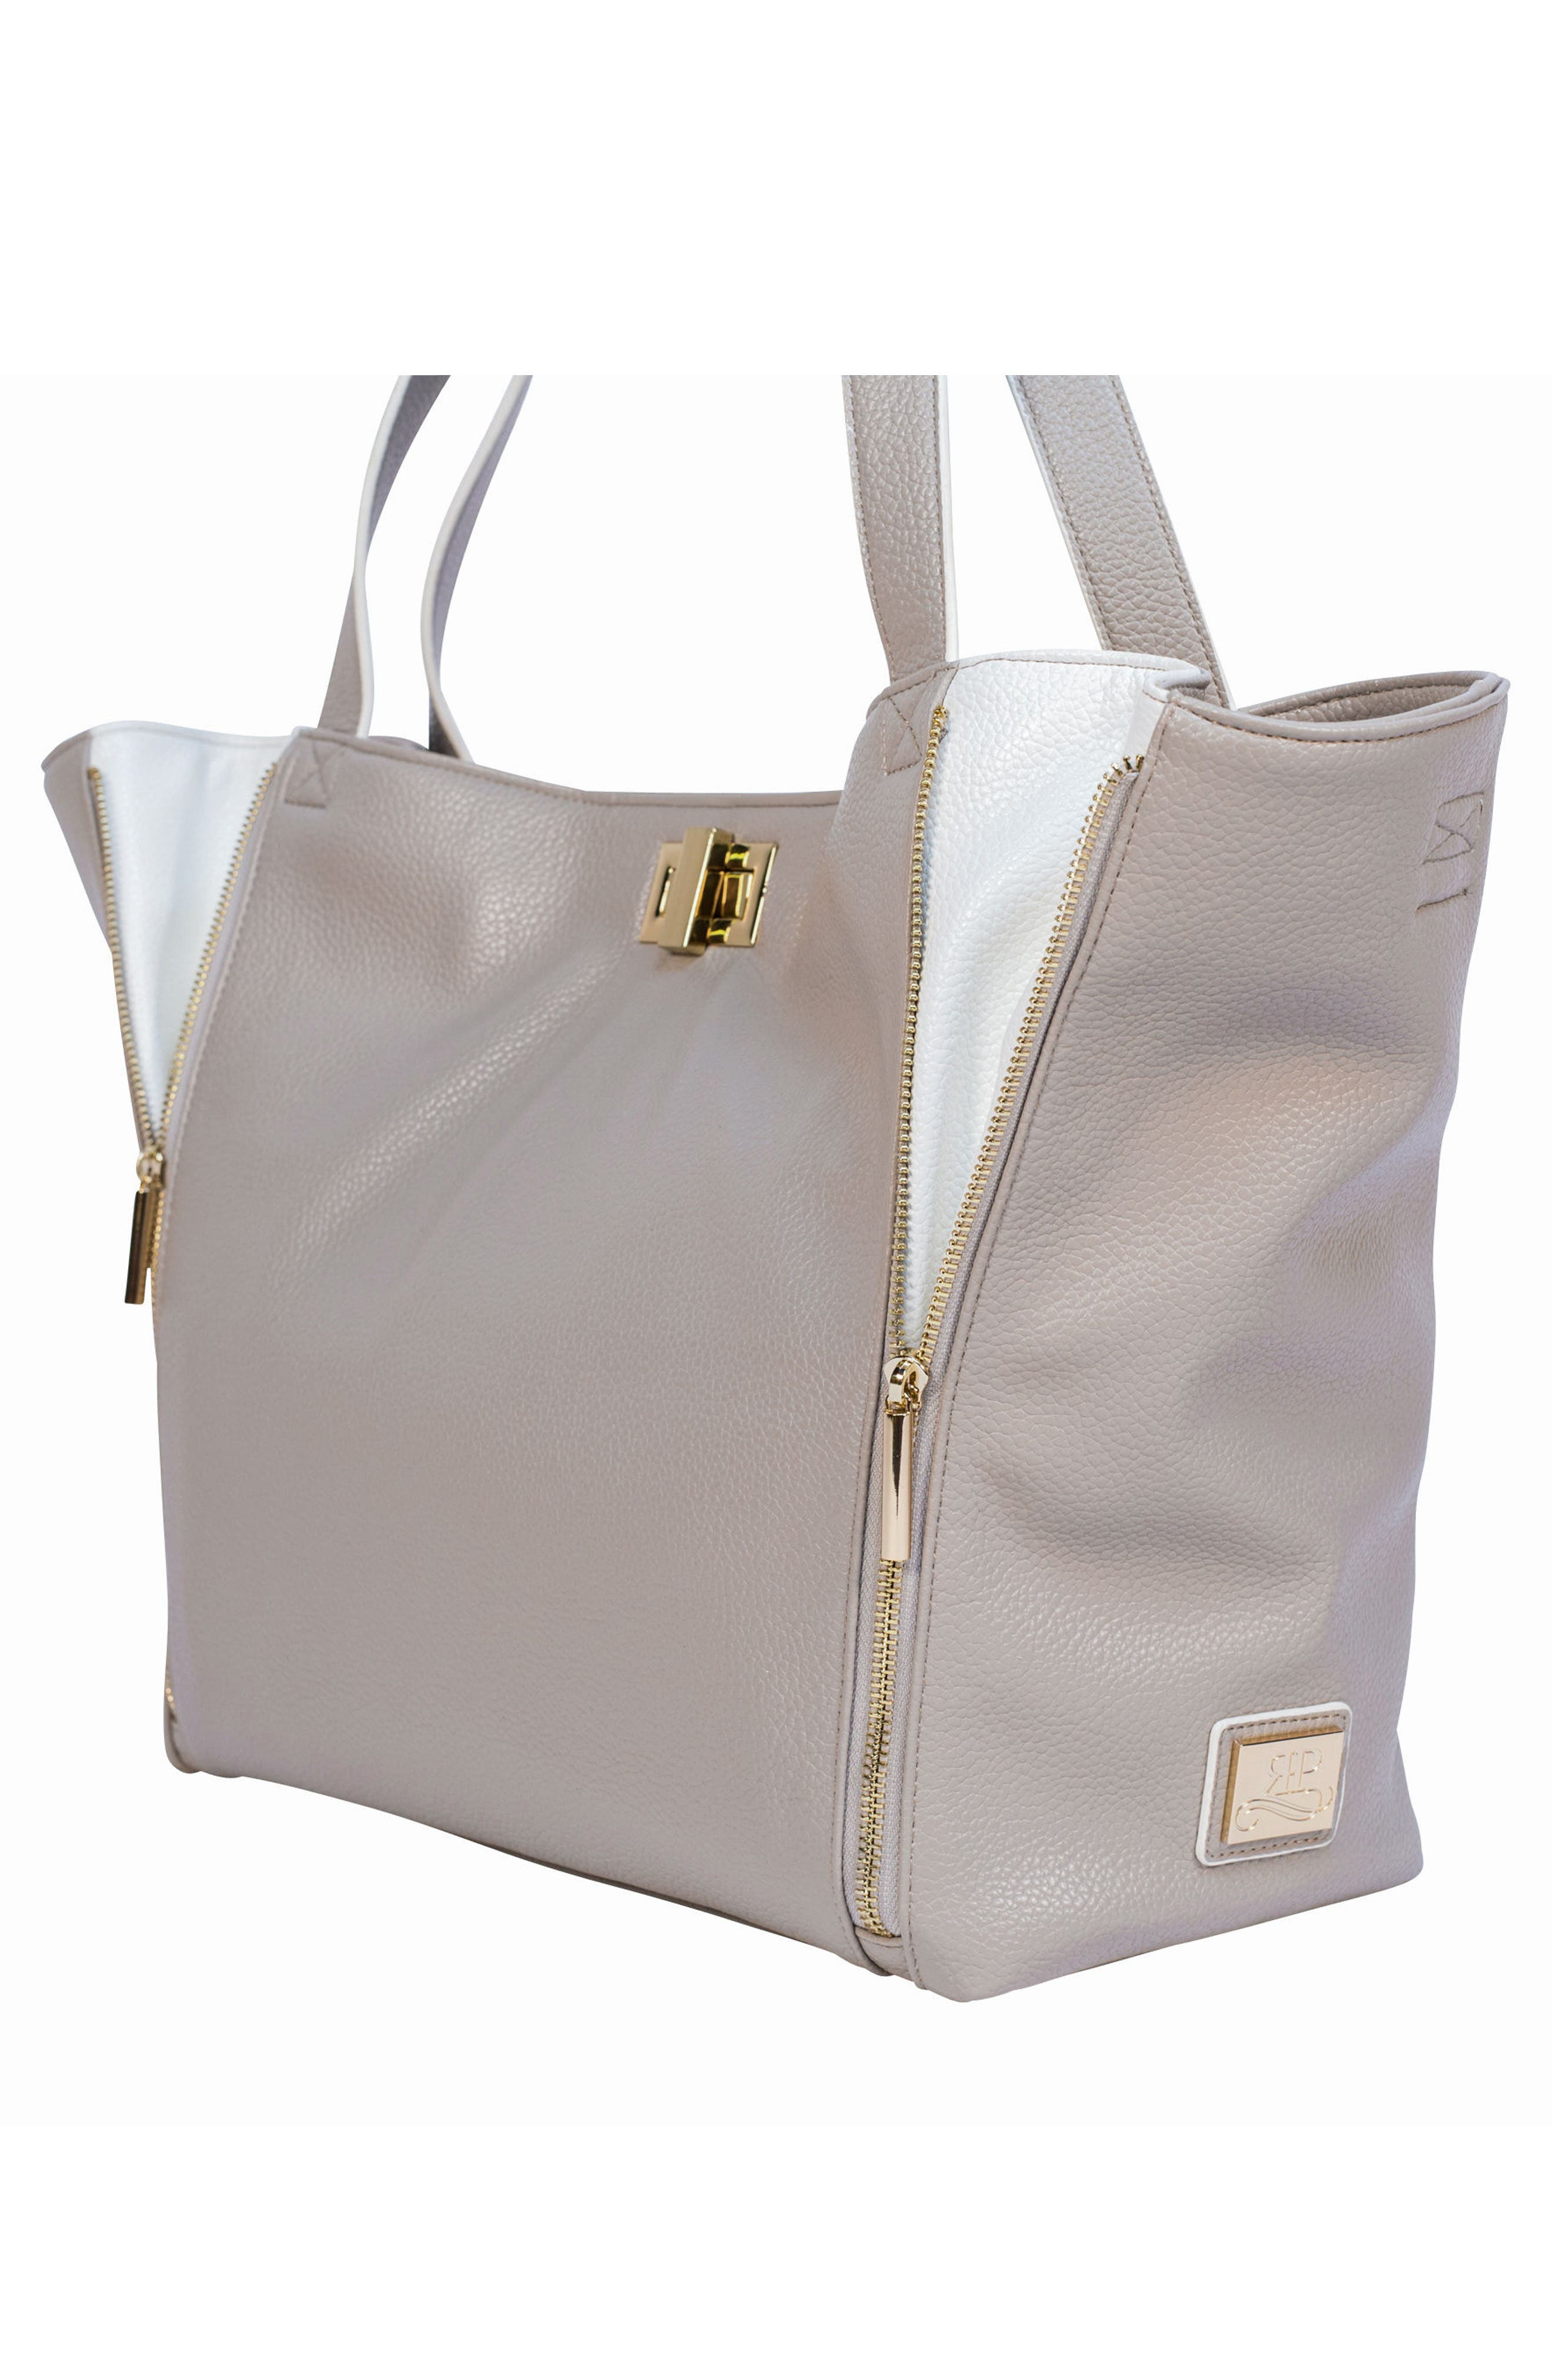 Sloane Diaper Bag,                             Alternate thumbnail 5, color,                             NEUTRAL/ WHITE